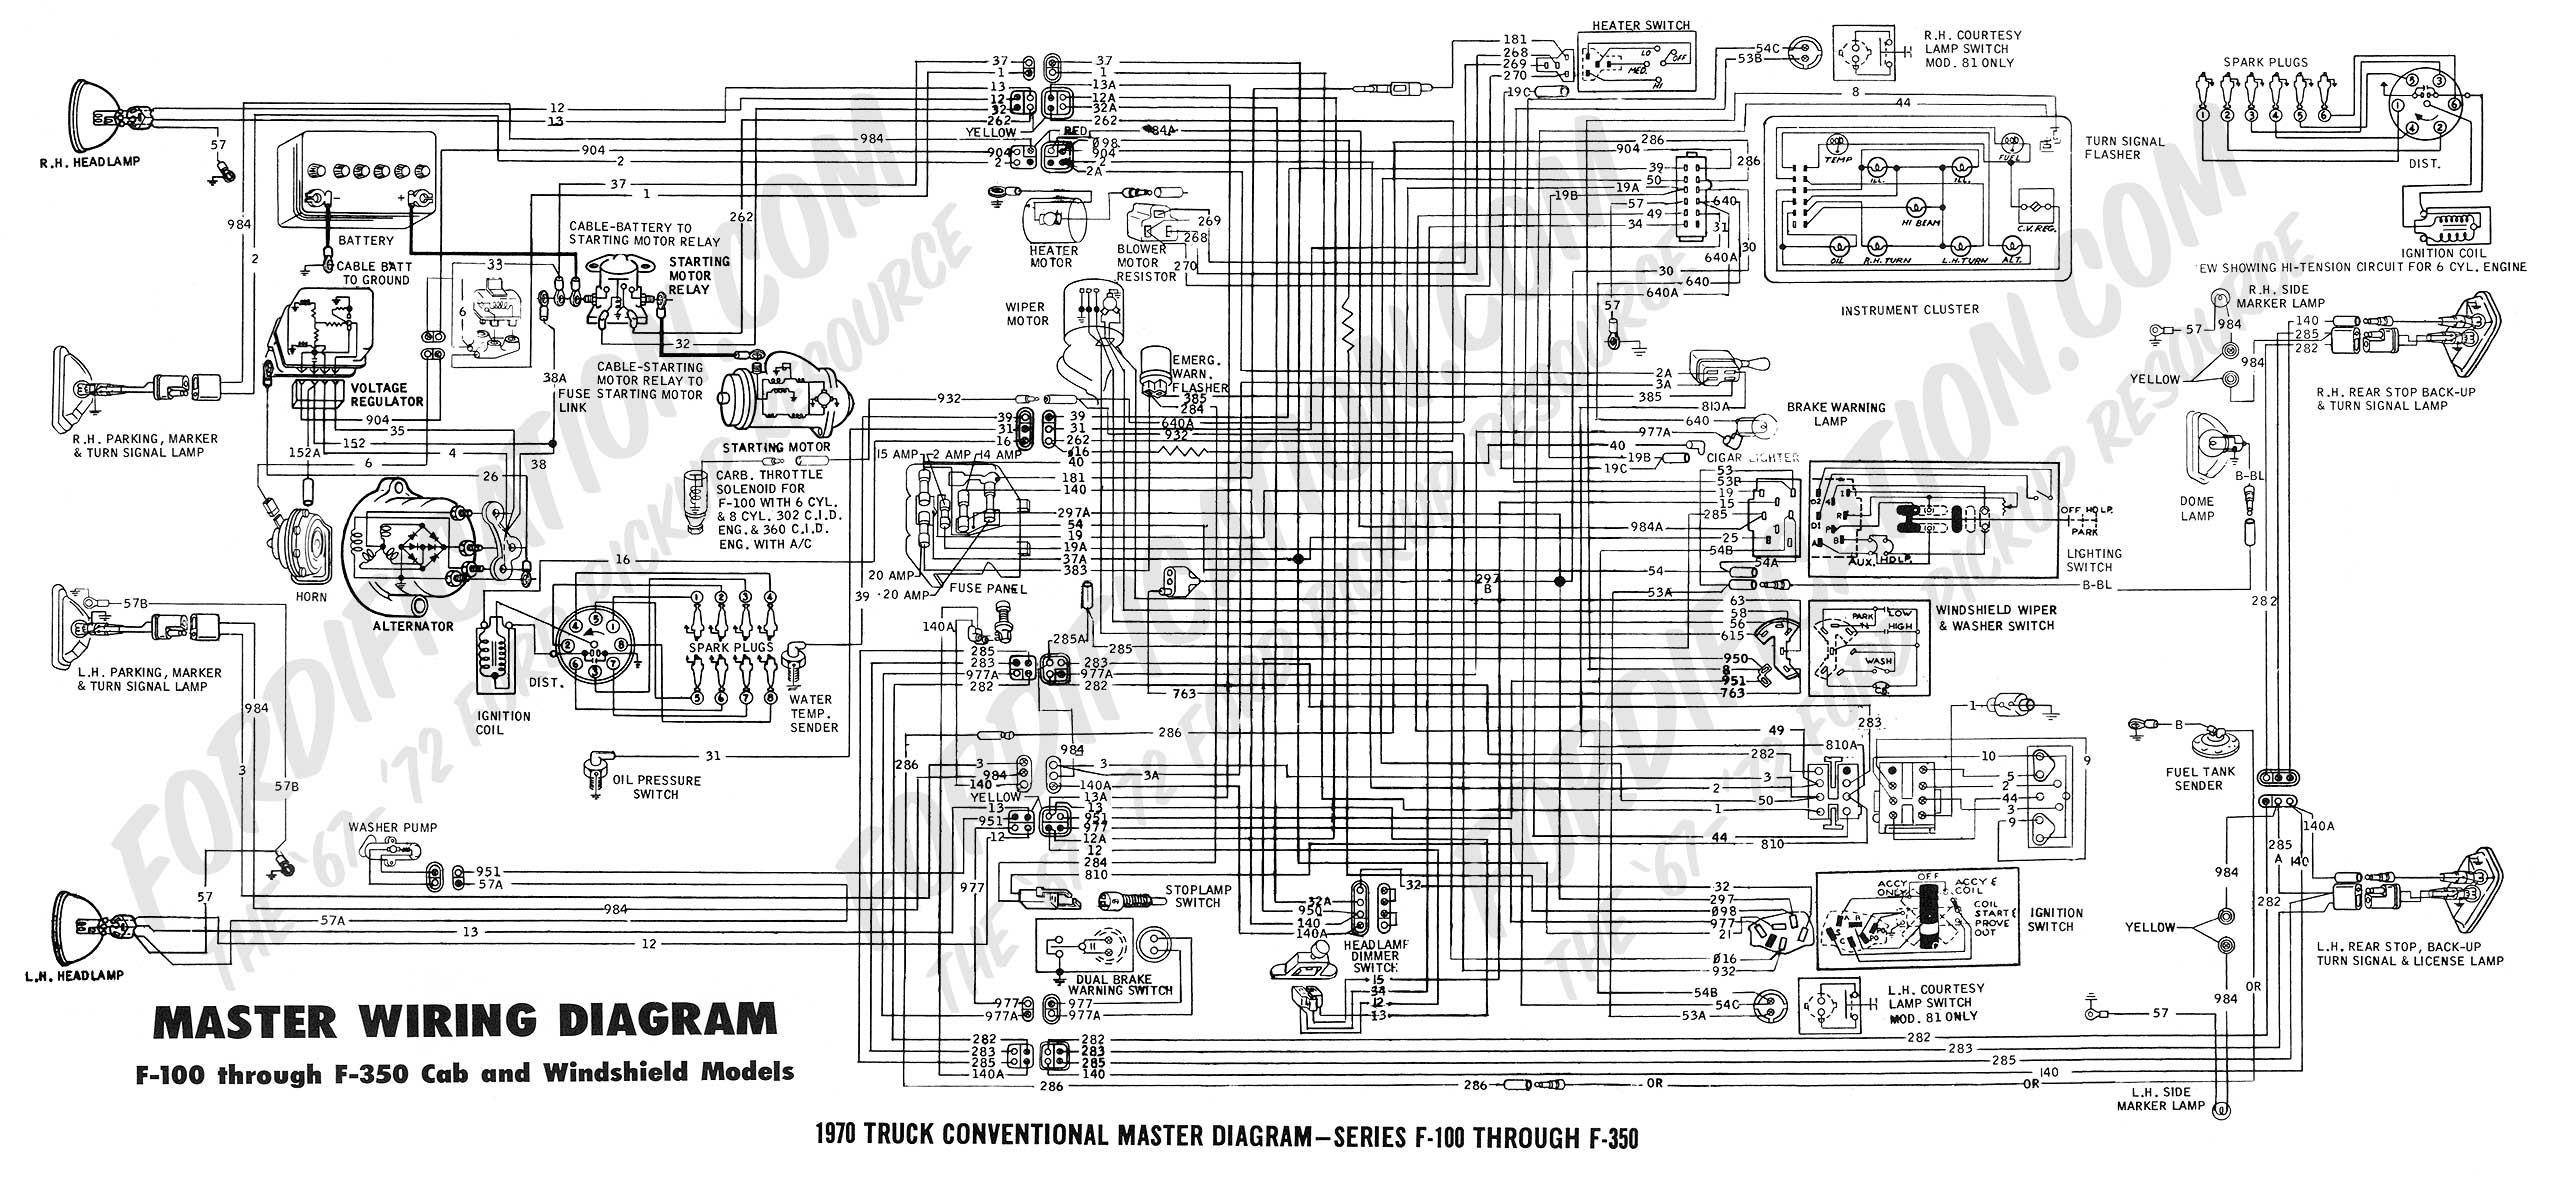 wiring diagram 70_master ford truck technical drawings and schematics section h wiring ford f250 wiring diagram at soozxer.org